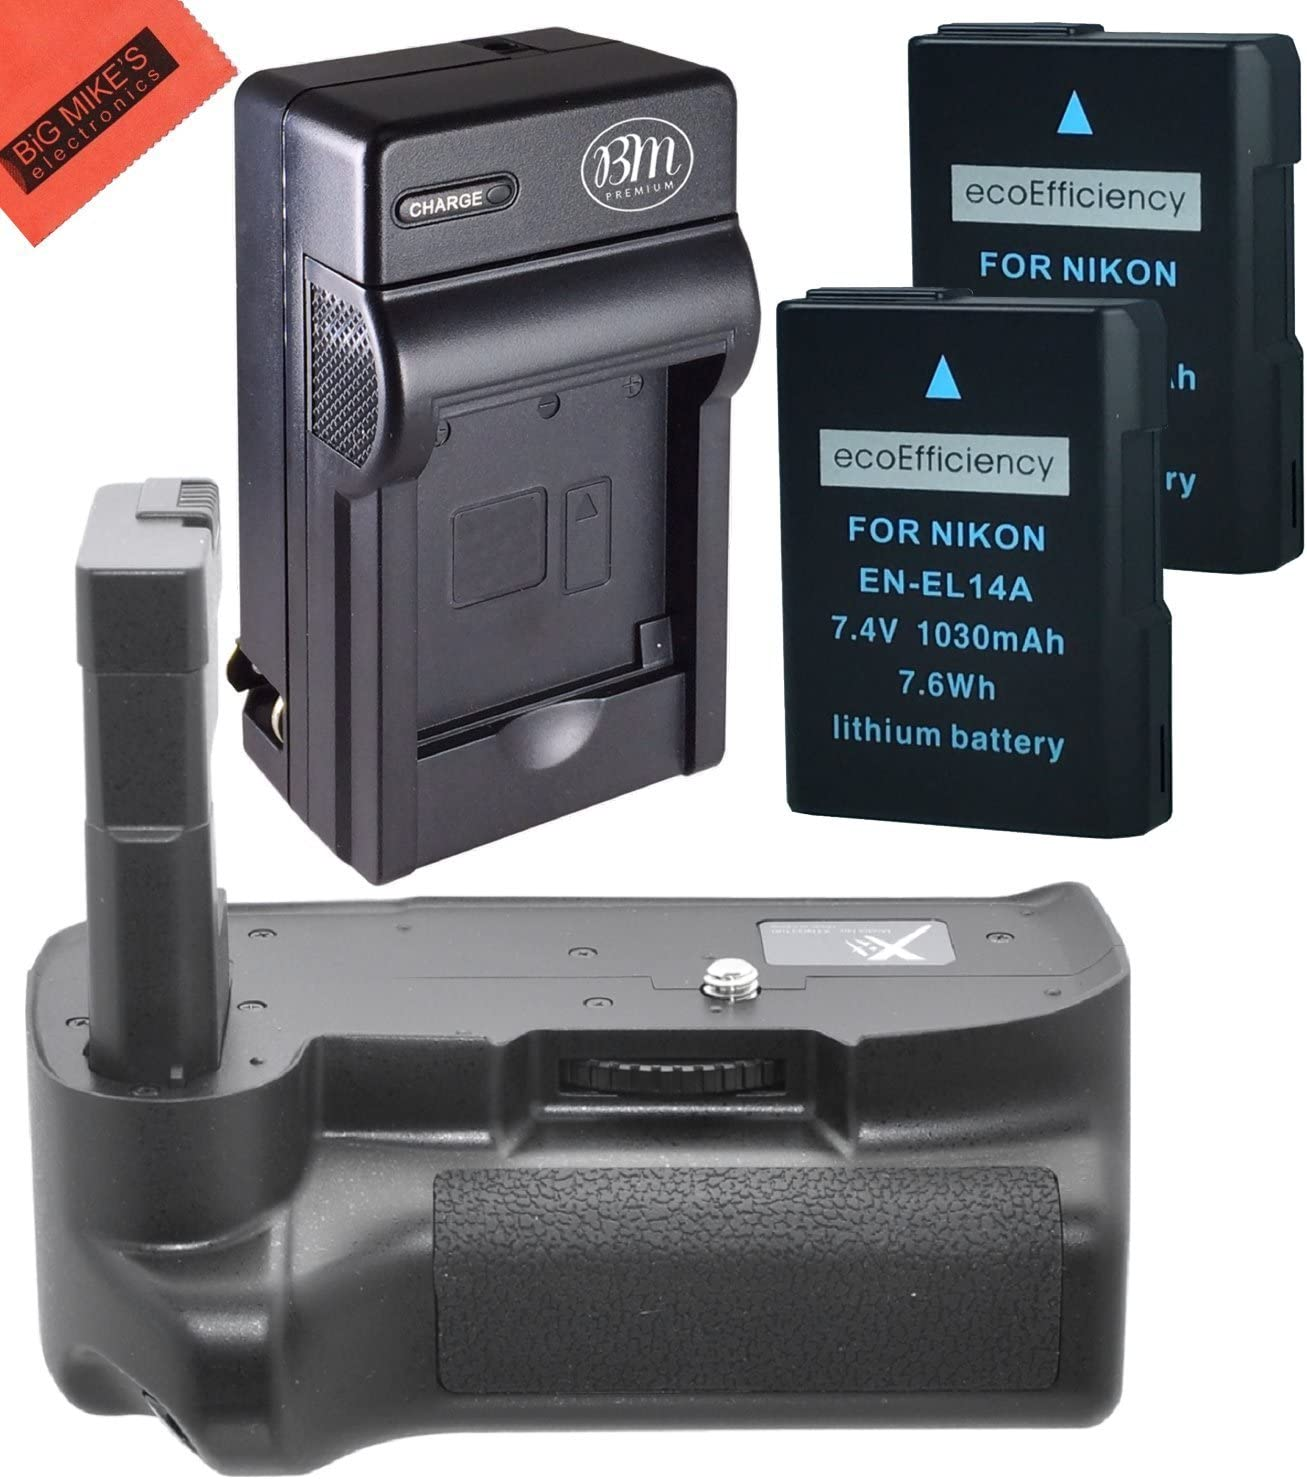 Battery Grip Ranking integrated 1st place Kit for Nikon D3400 Digital Popular brand SLR Includes R - Camera